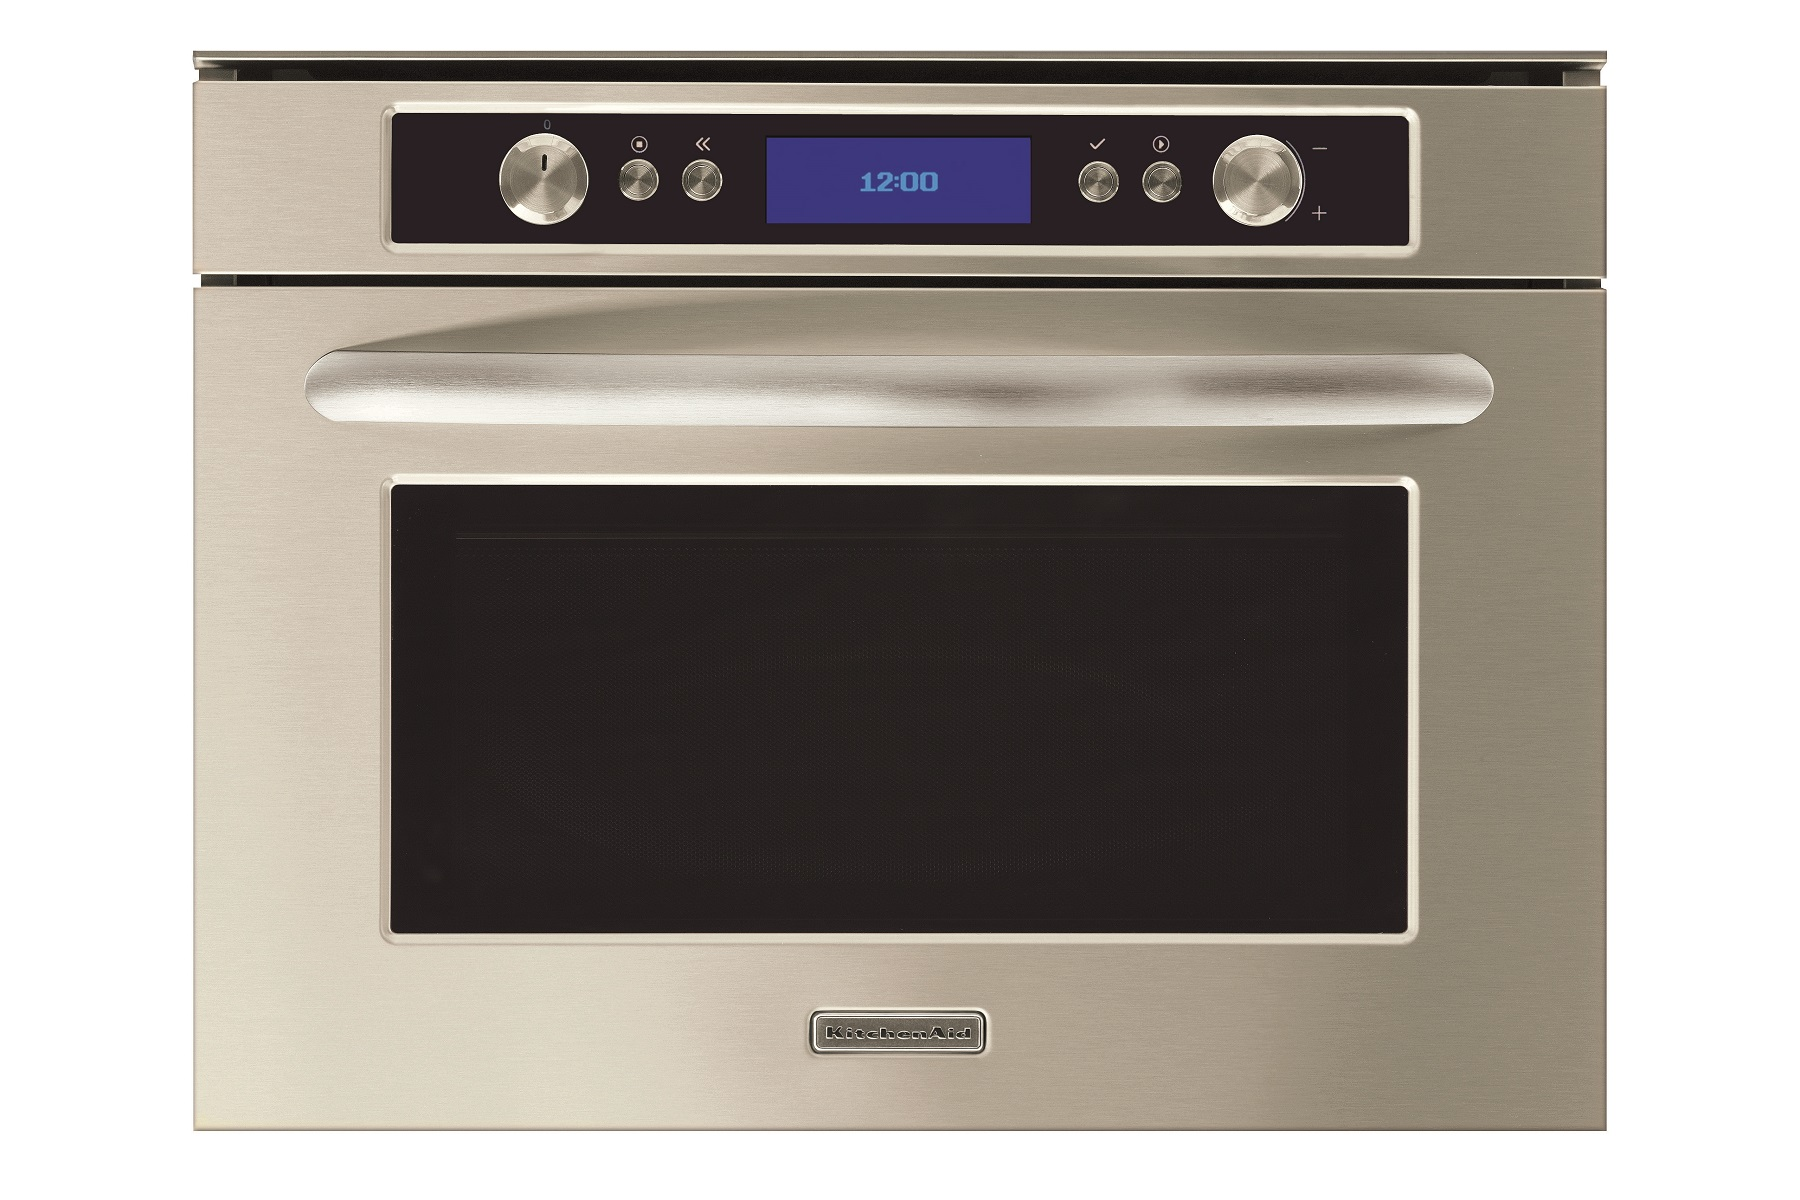 Whirlpool kitchenaid built in eco mode microwave oven frontal - Kitchenaid microwave turntable replacement ...